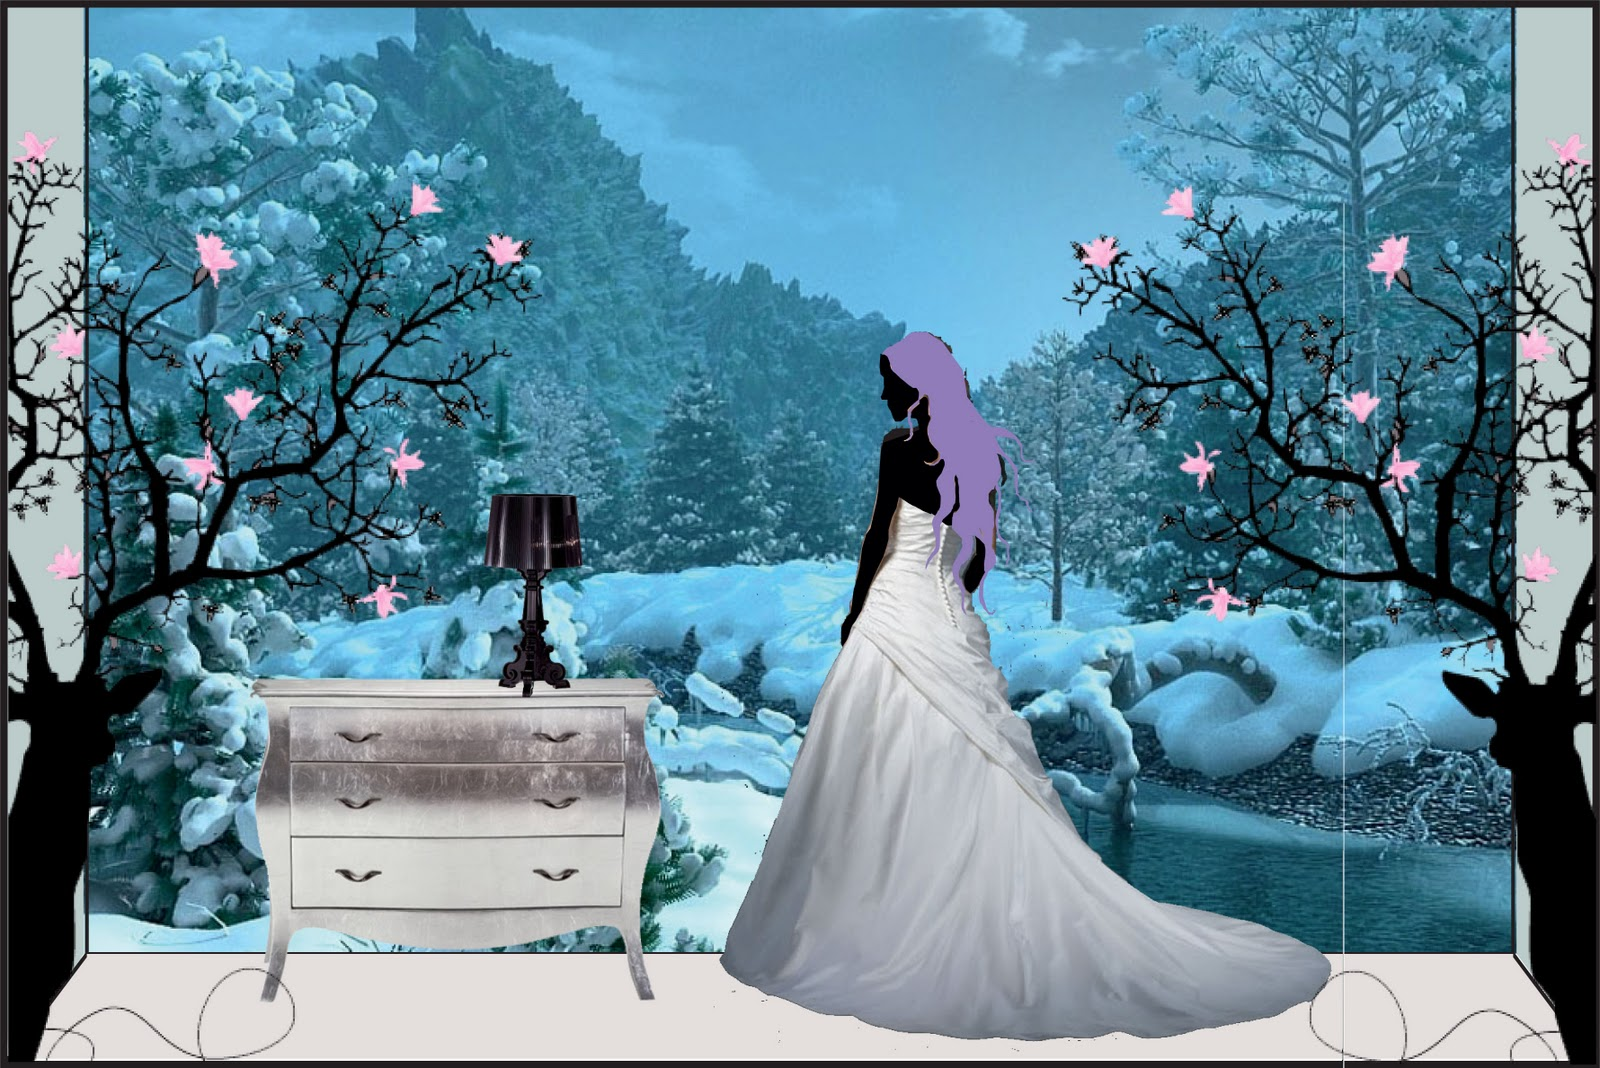 A window display showing a scene of a princess looking at the all white nature, and how the winter-cooled everything around her.